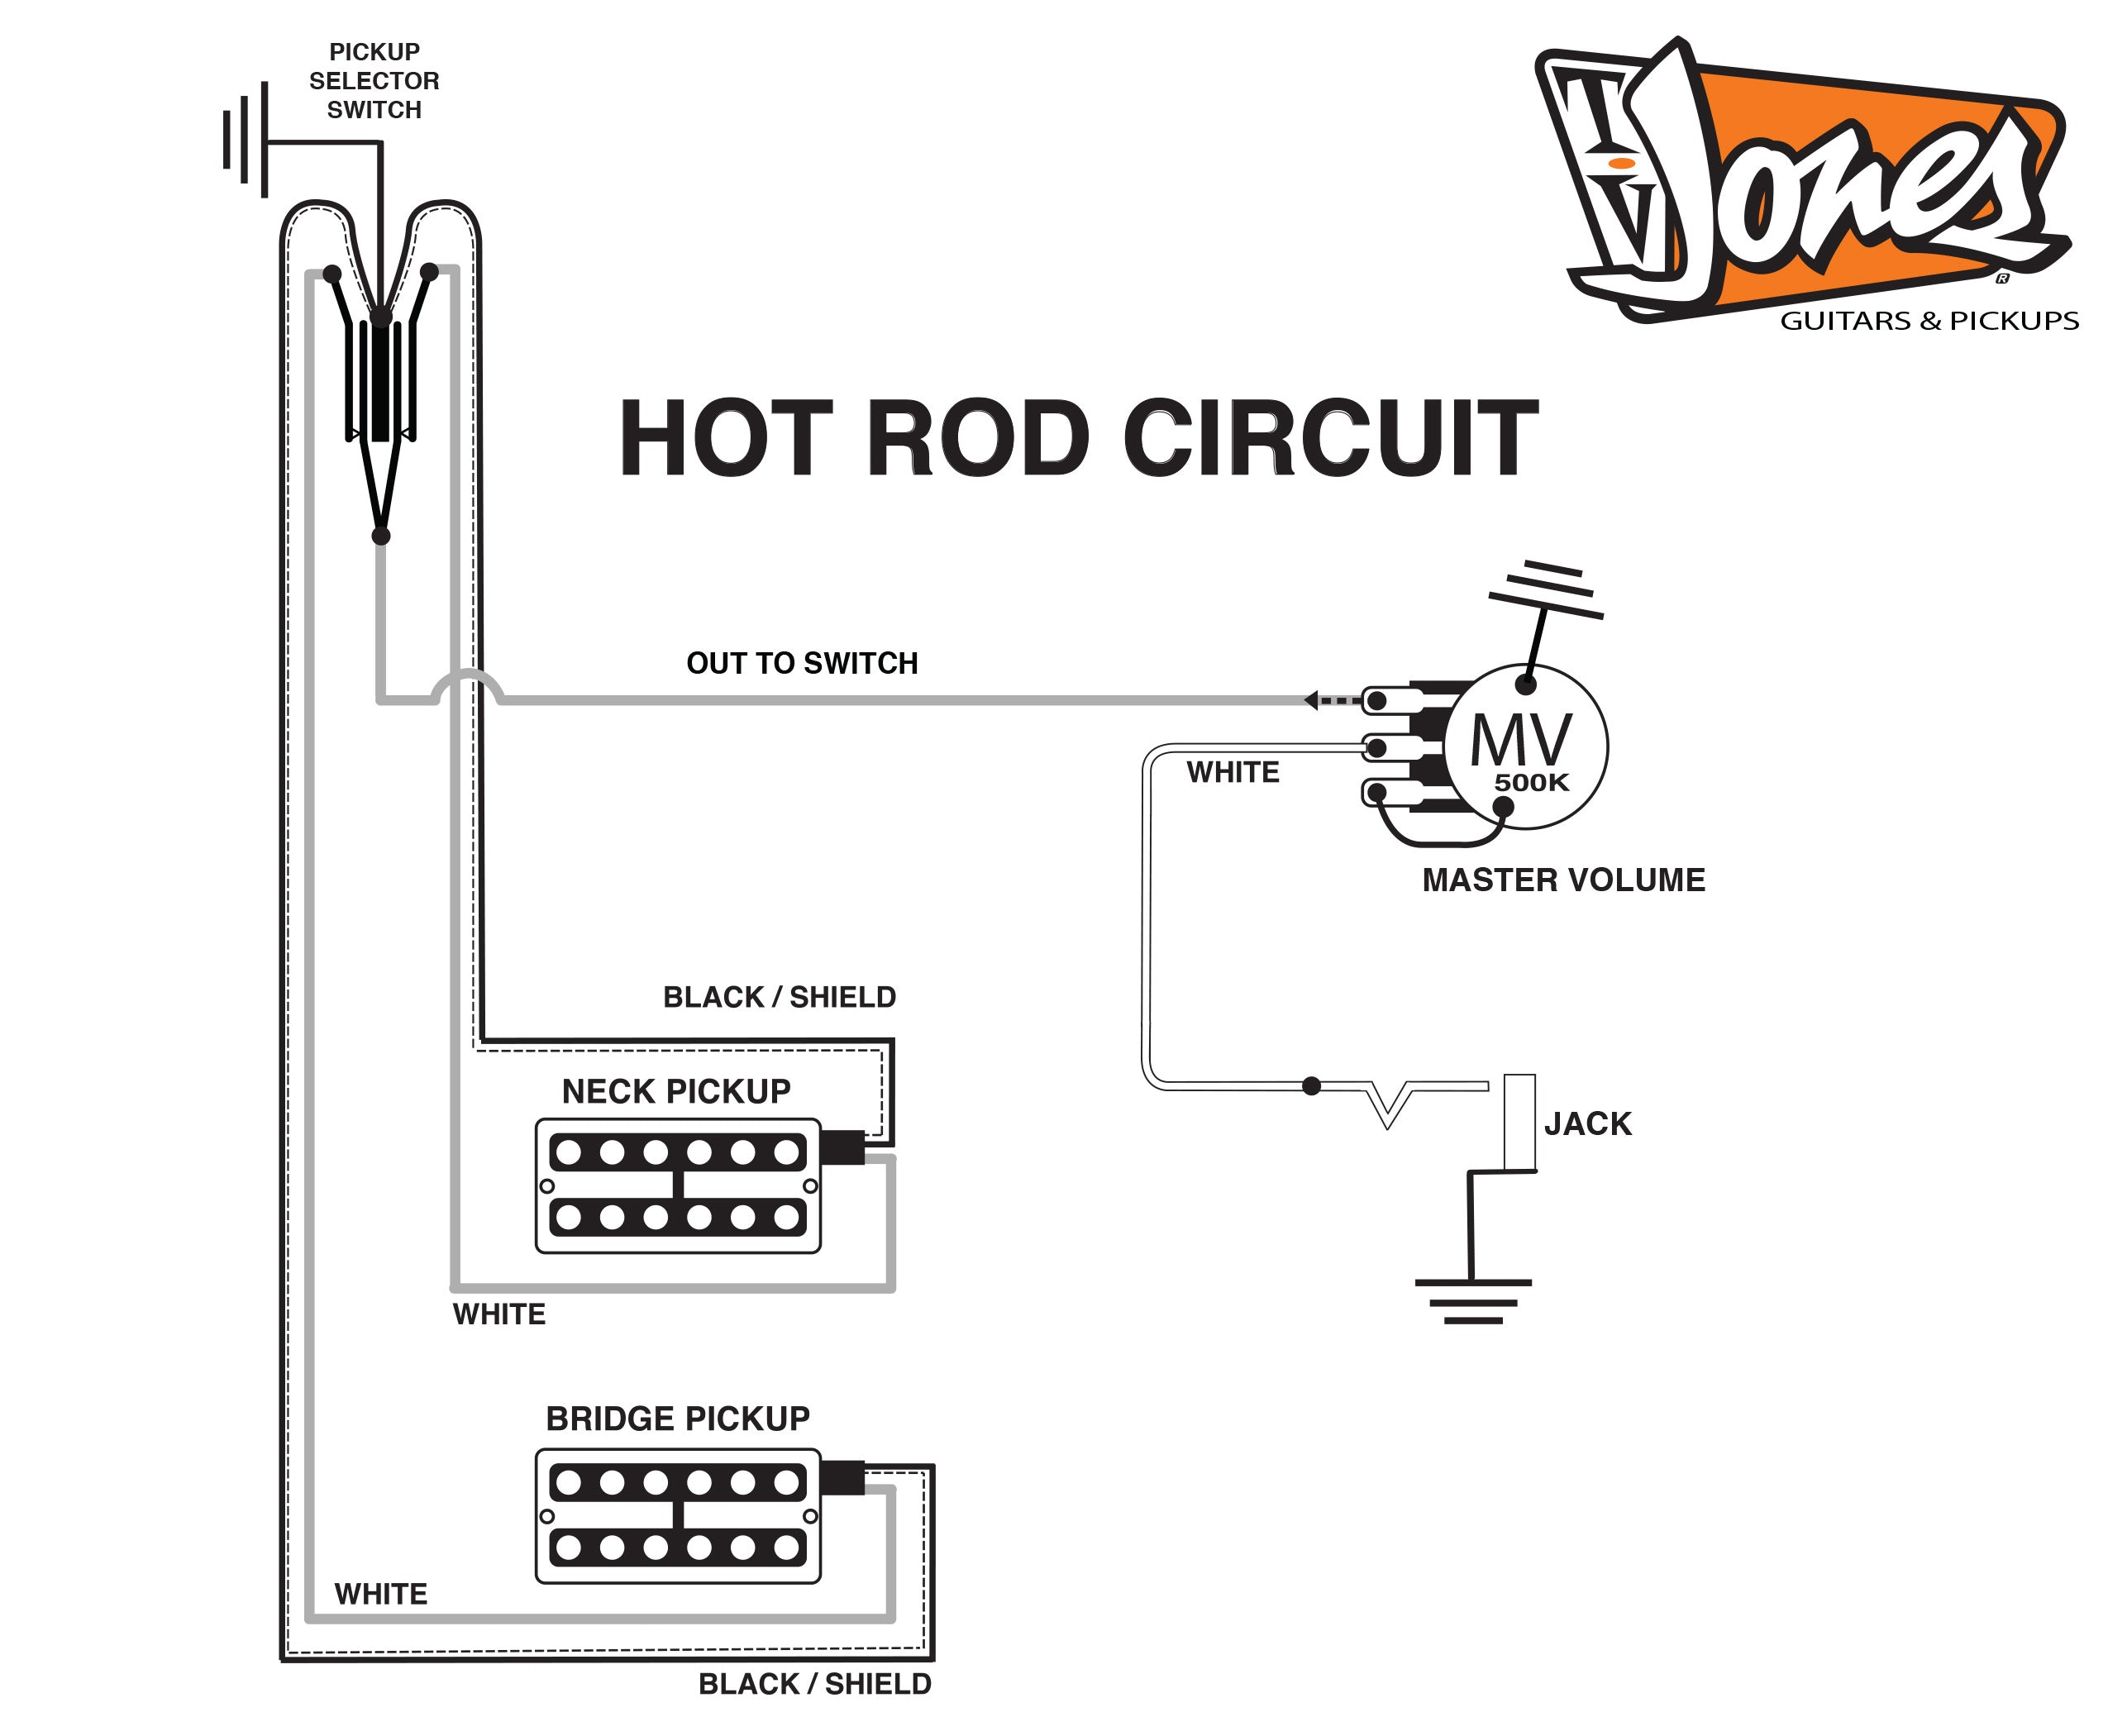 tv jones product dimensions guitar amp wiring diagram gretsch pickup wiring diagram #8